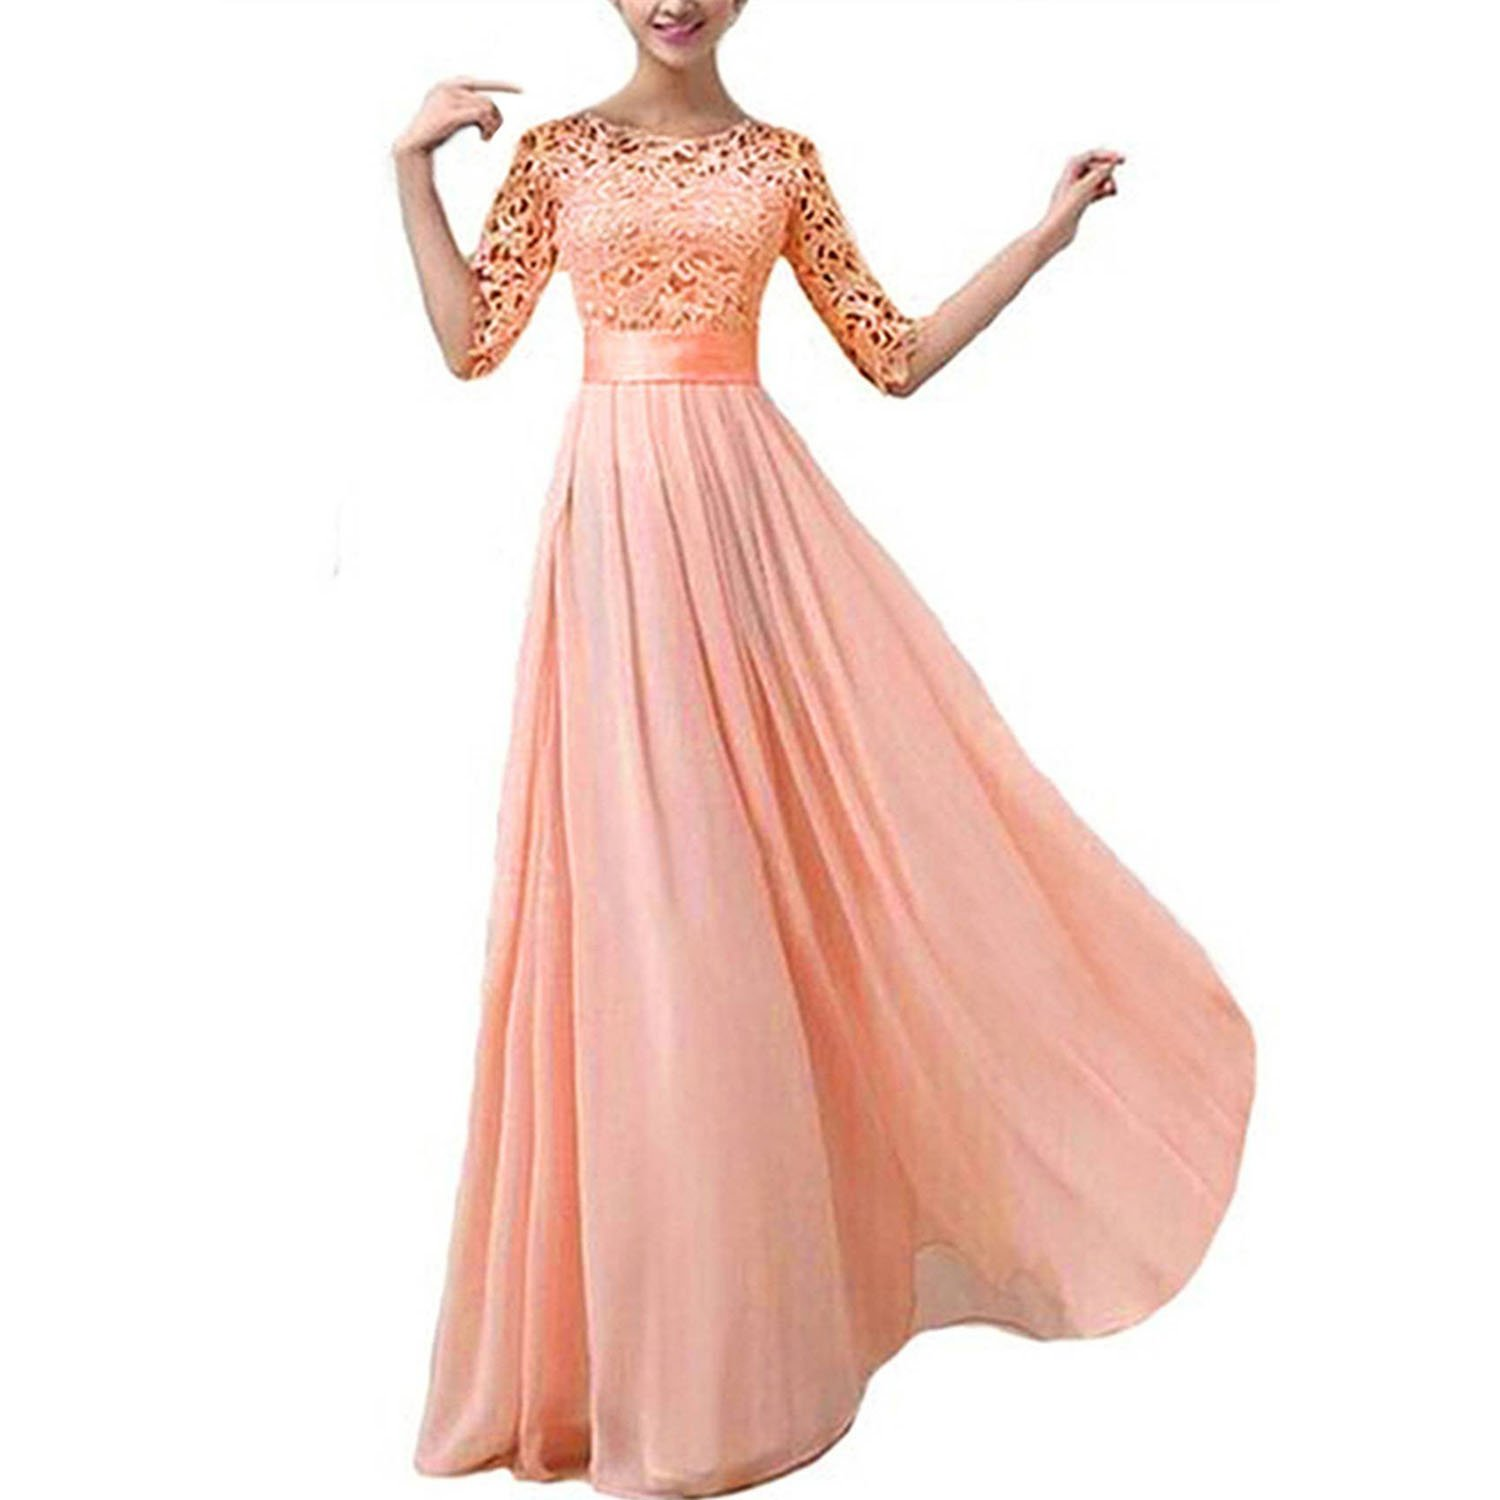 wedding dress - SODIAL (R) Chiffon lace Wedding Dress Ball Gown Prom Dress wedding dress Pink XXL SODIAL(R) 047481B5